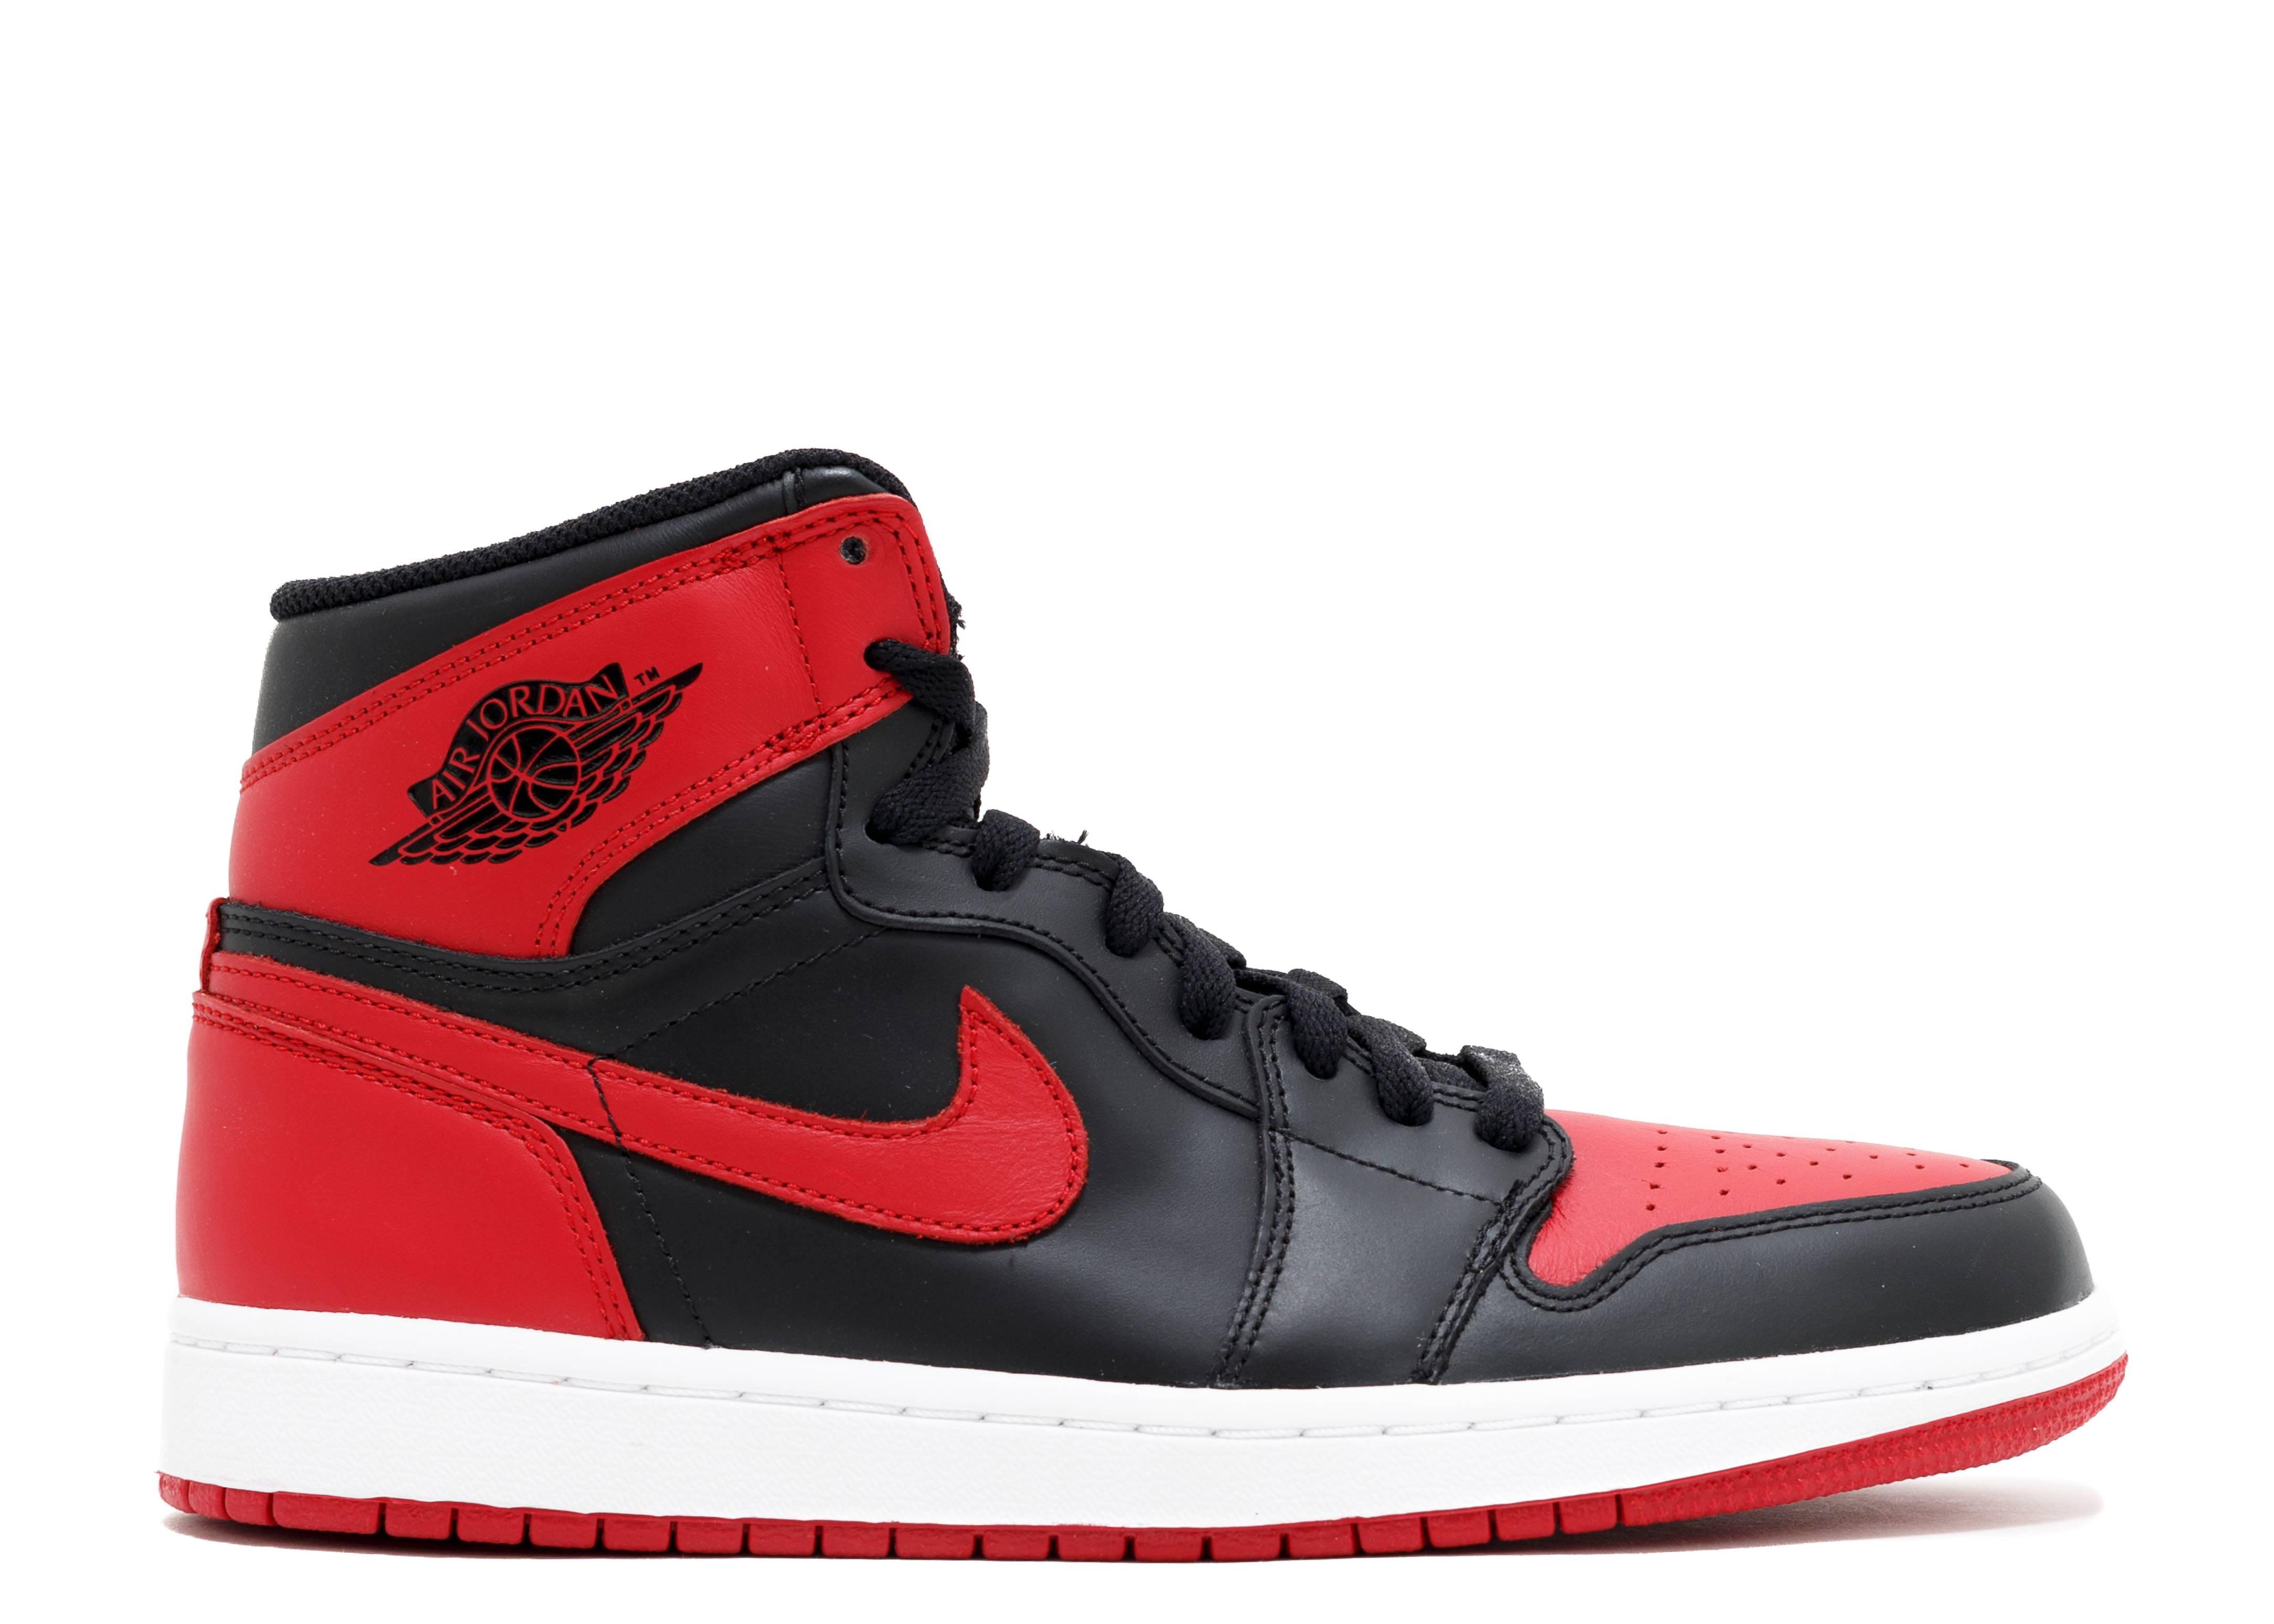 nike air jordan 1 retro high og bred